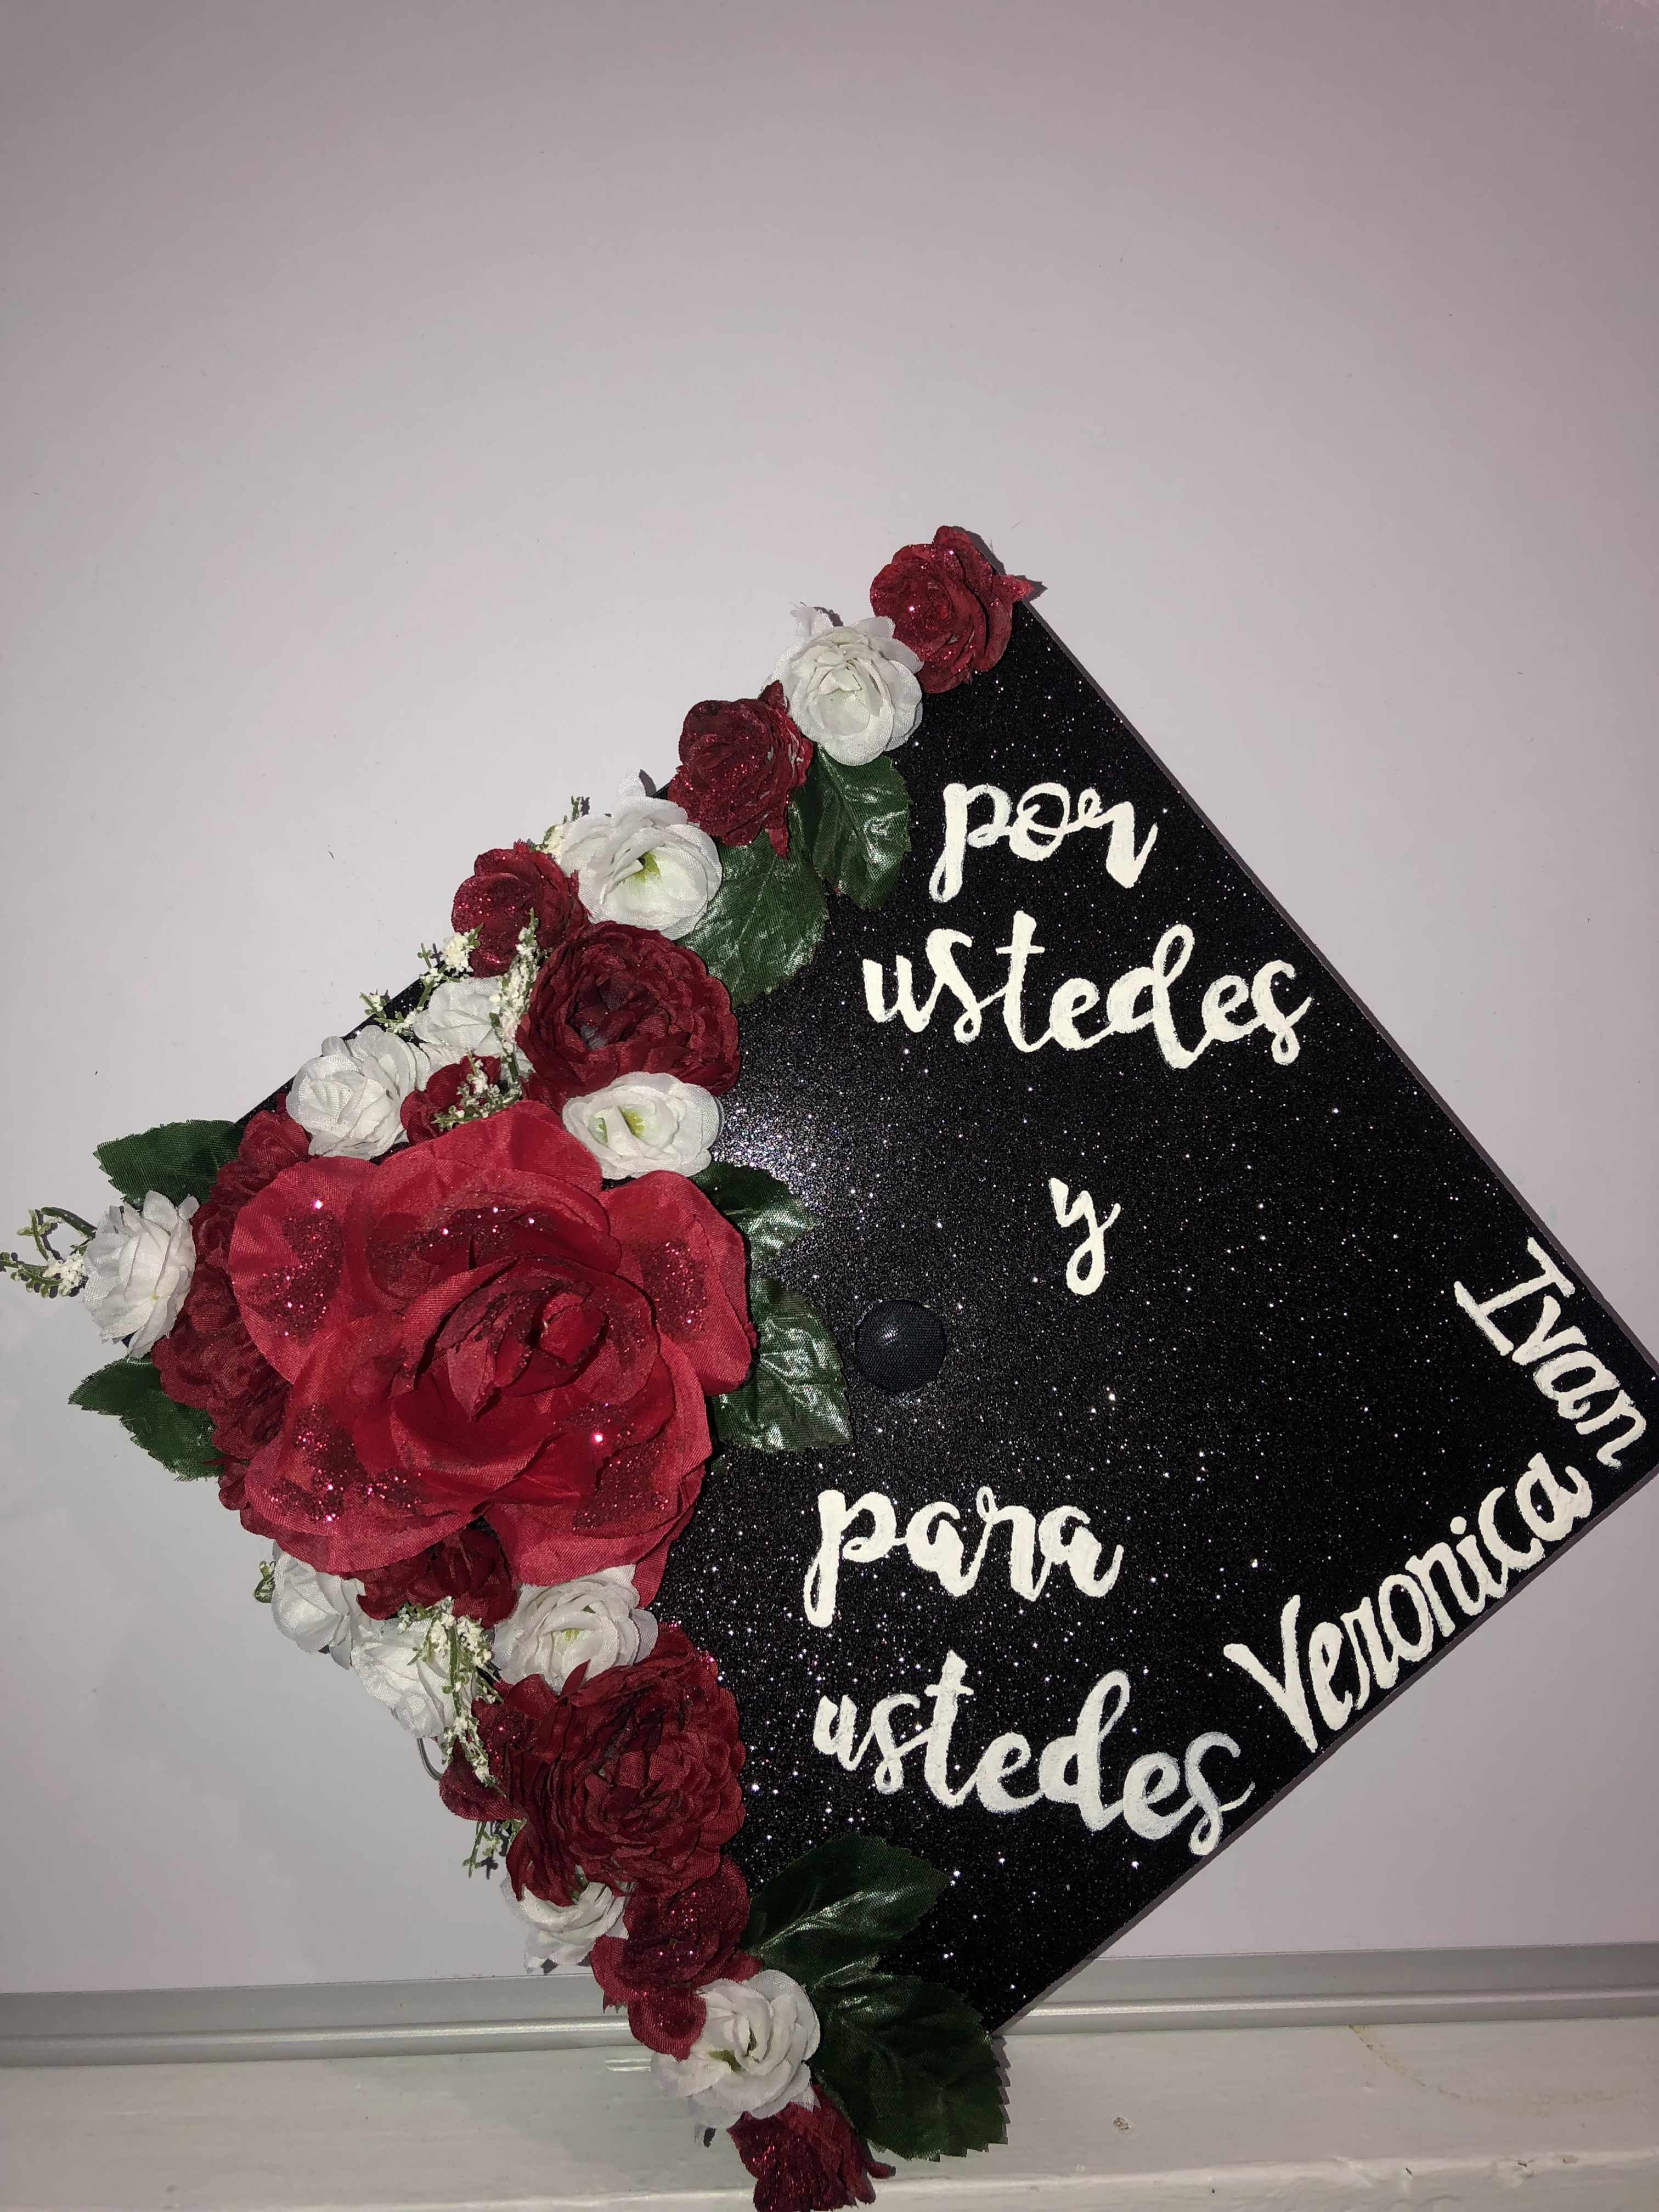 Roses Red And White Spanish Por Ustedes Y Para Ustedes Grad Cap Graduation Cap Red And White Senior Boards